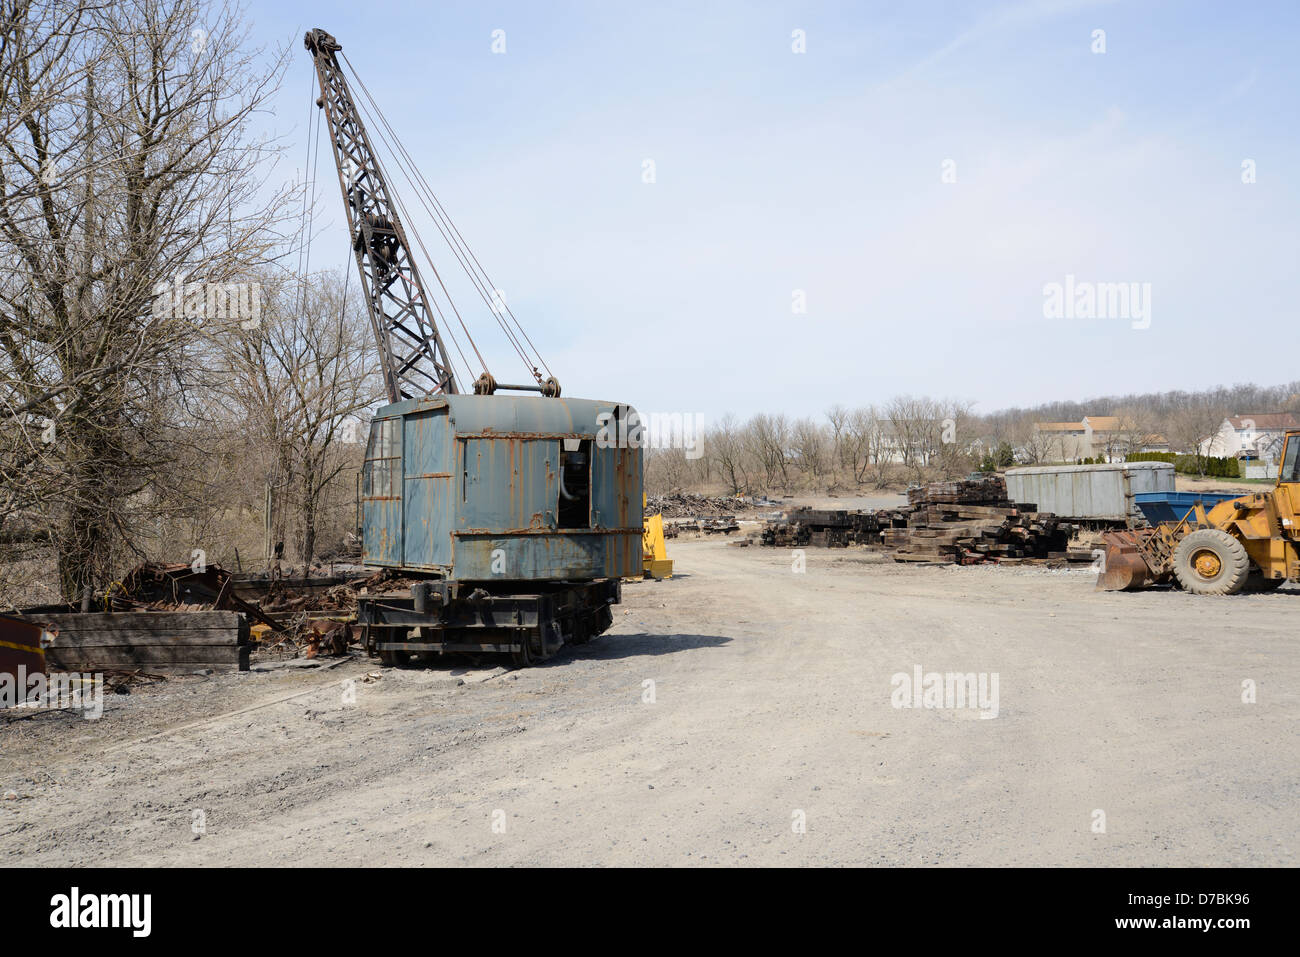 old construction crane sitting abandoned in a junkyard - Stock Image